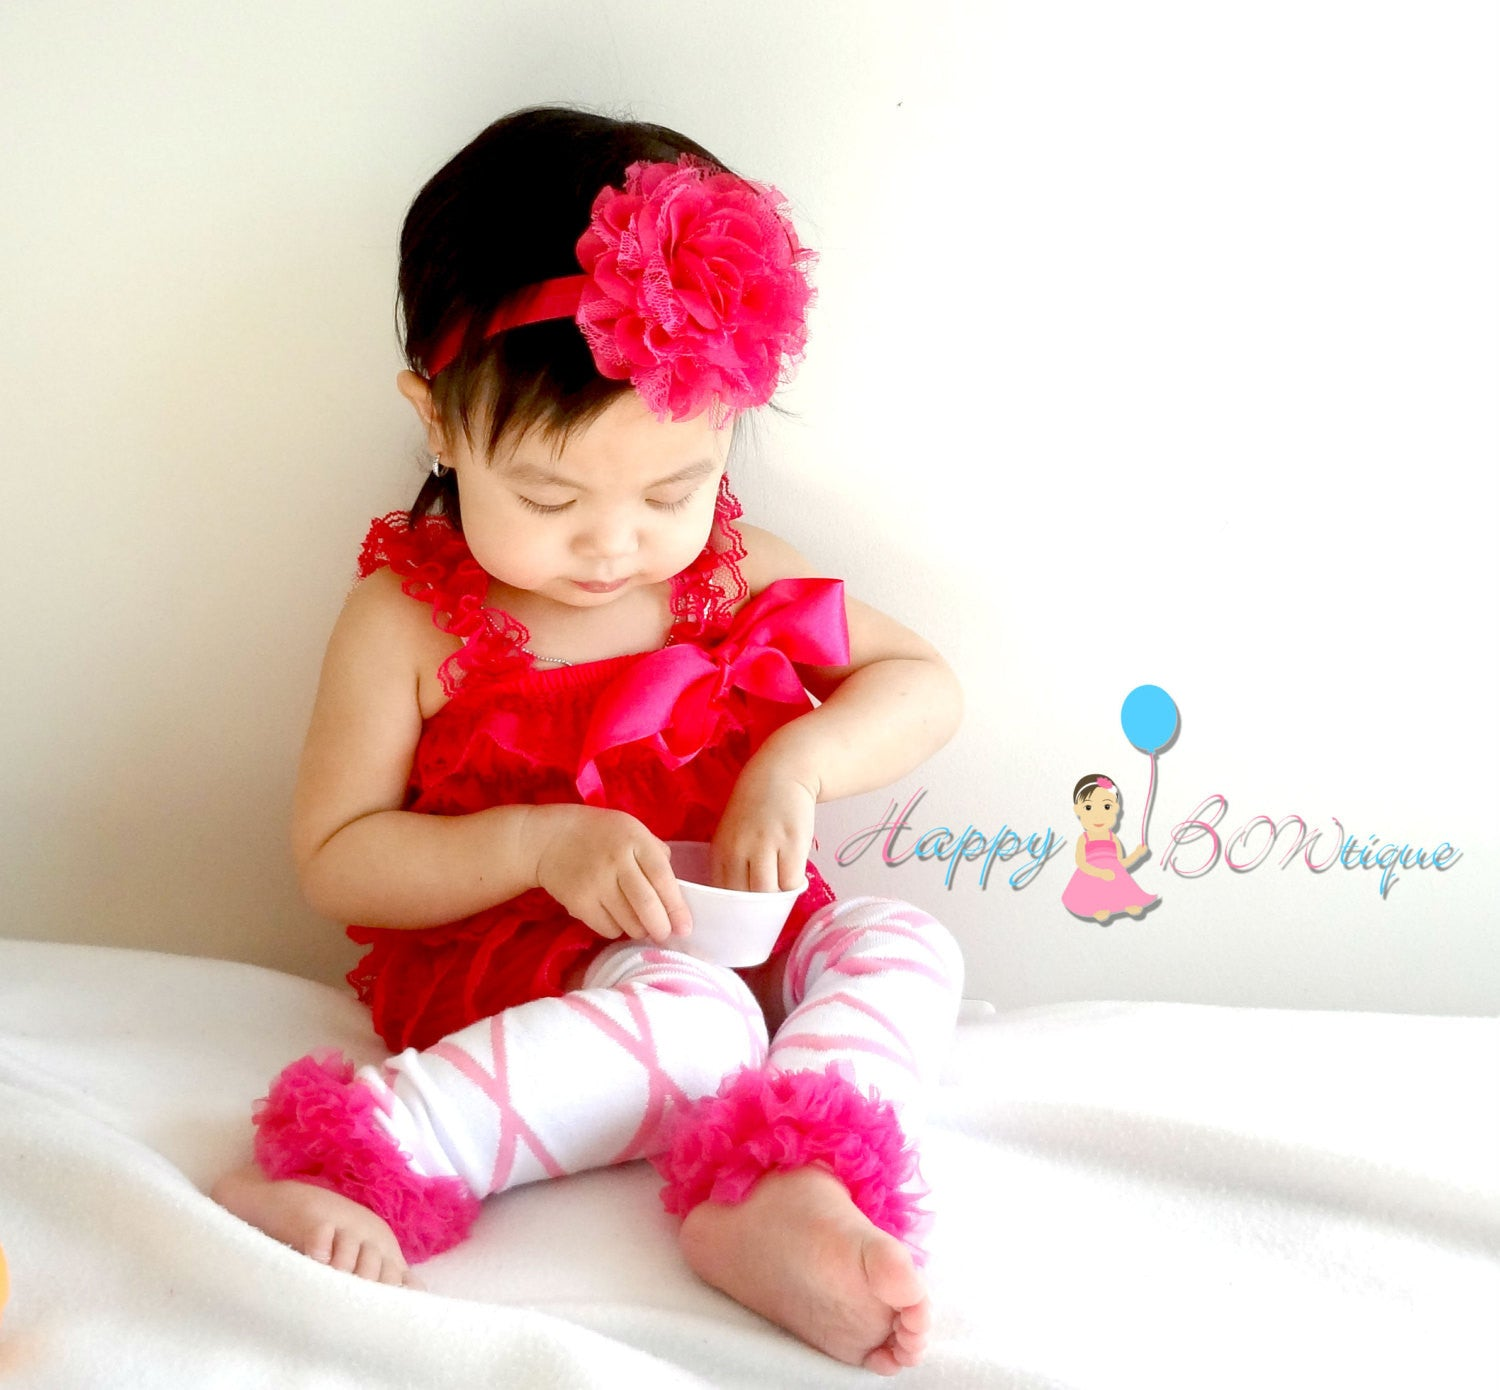 Baby Pink Ballerina Lace Romper set - Happy BOWtique - children's clothing, Baby Girl clothing